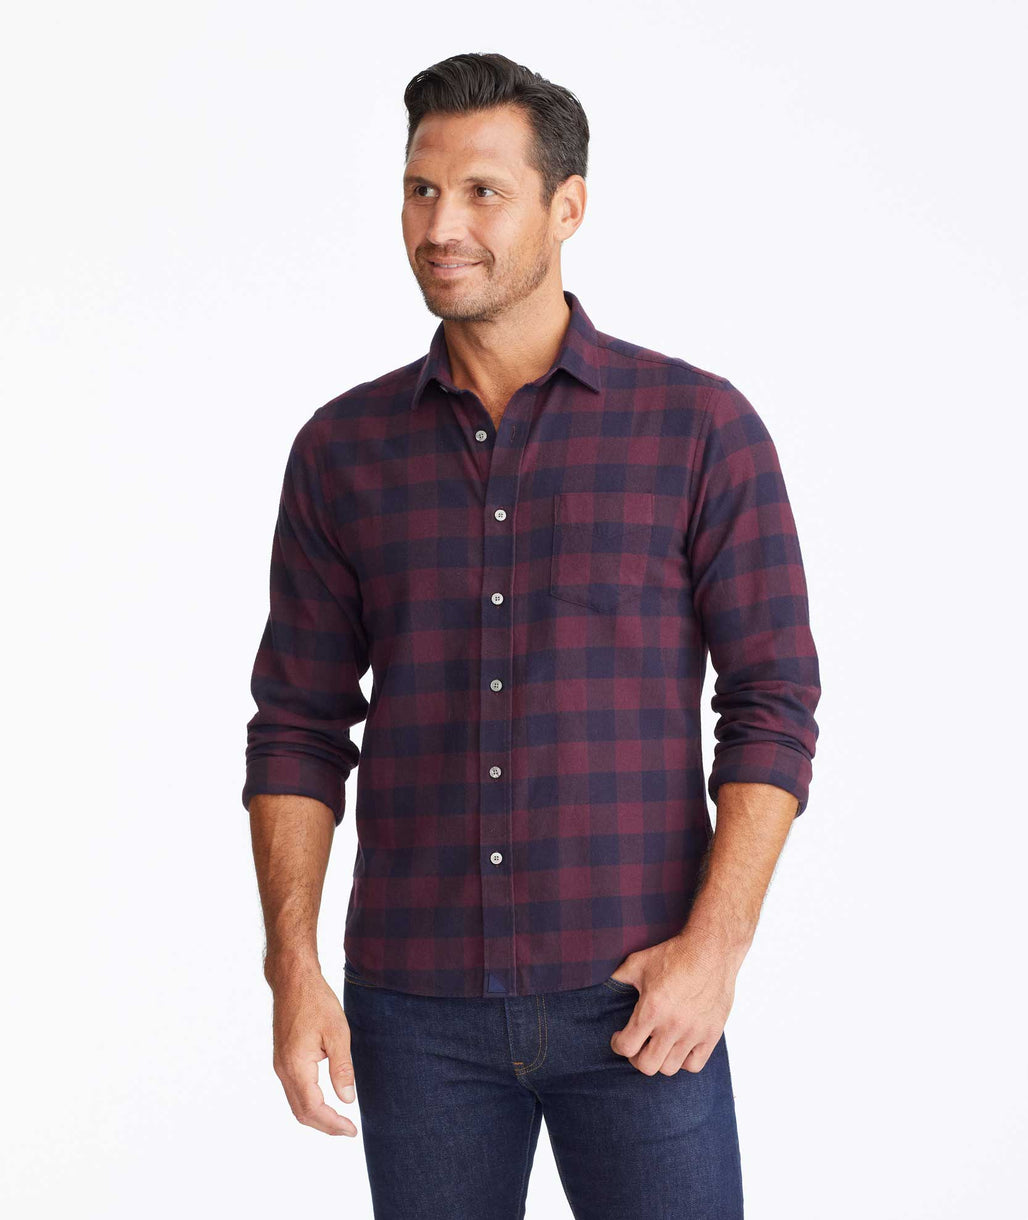 Model wearing a Dark Red Flannel Barrelstone Shirt